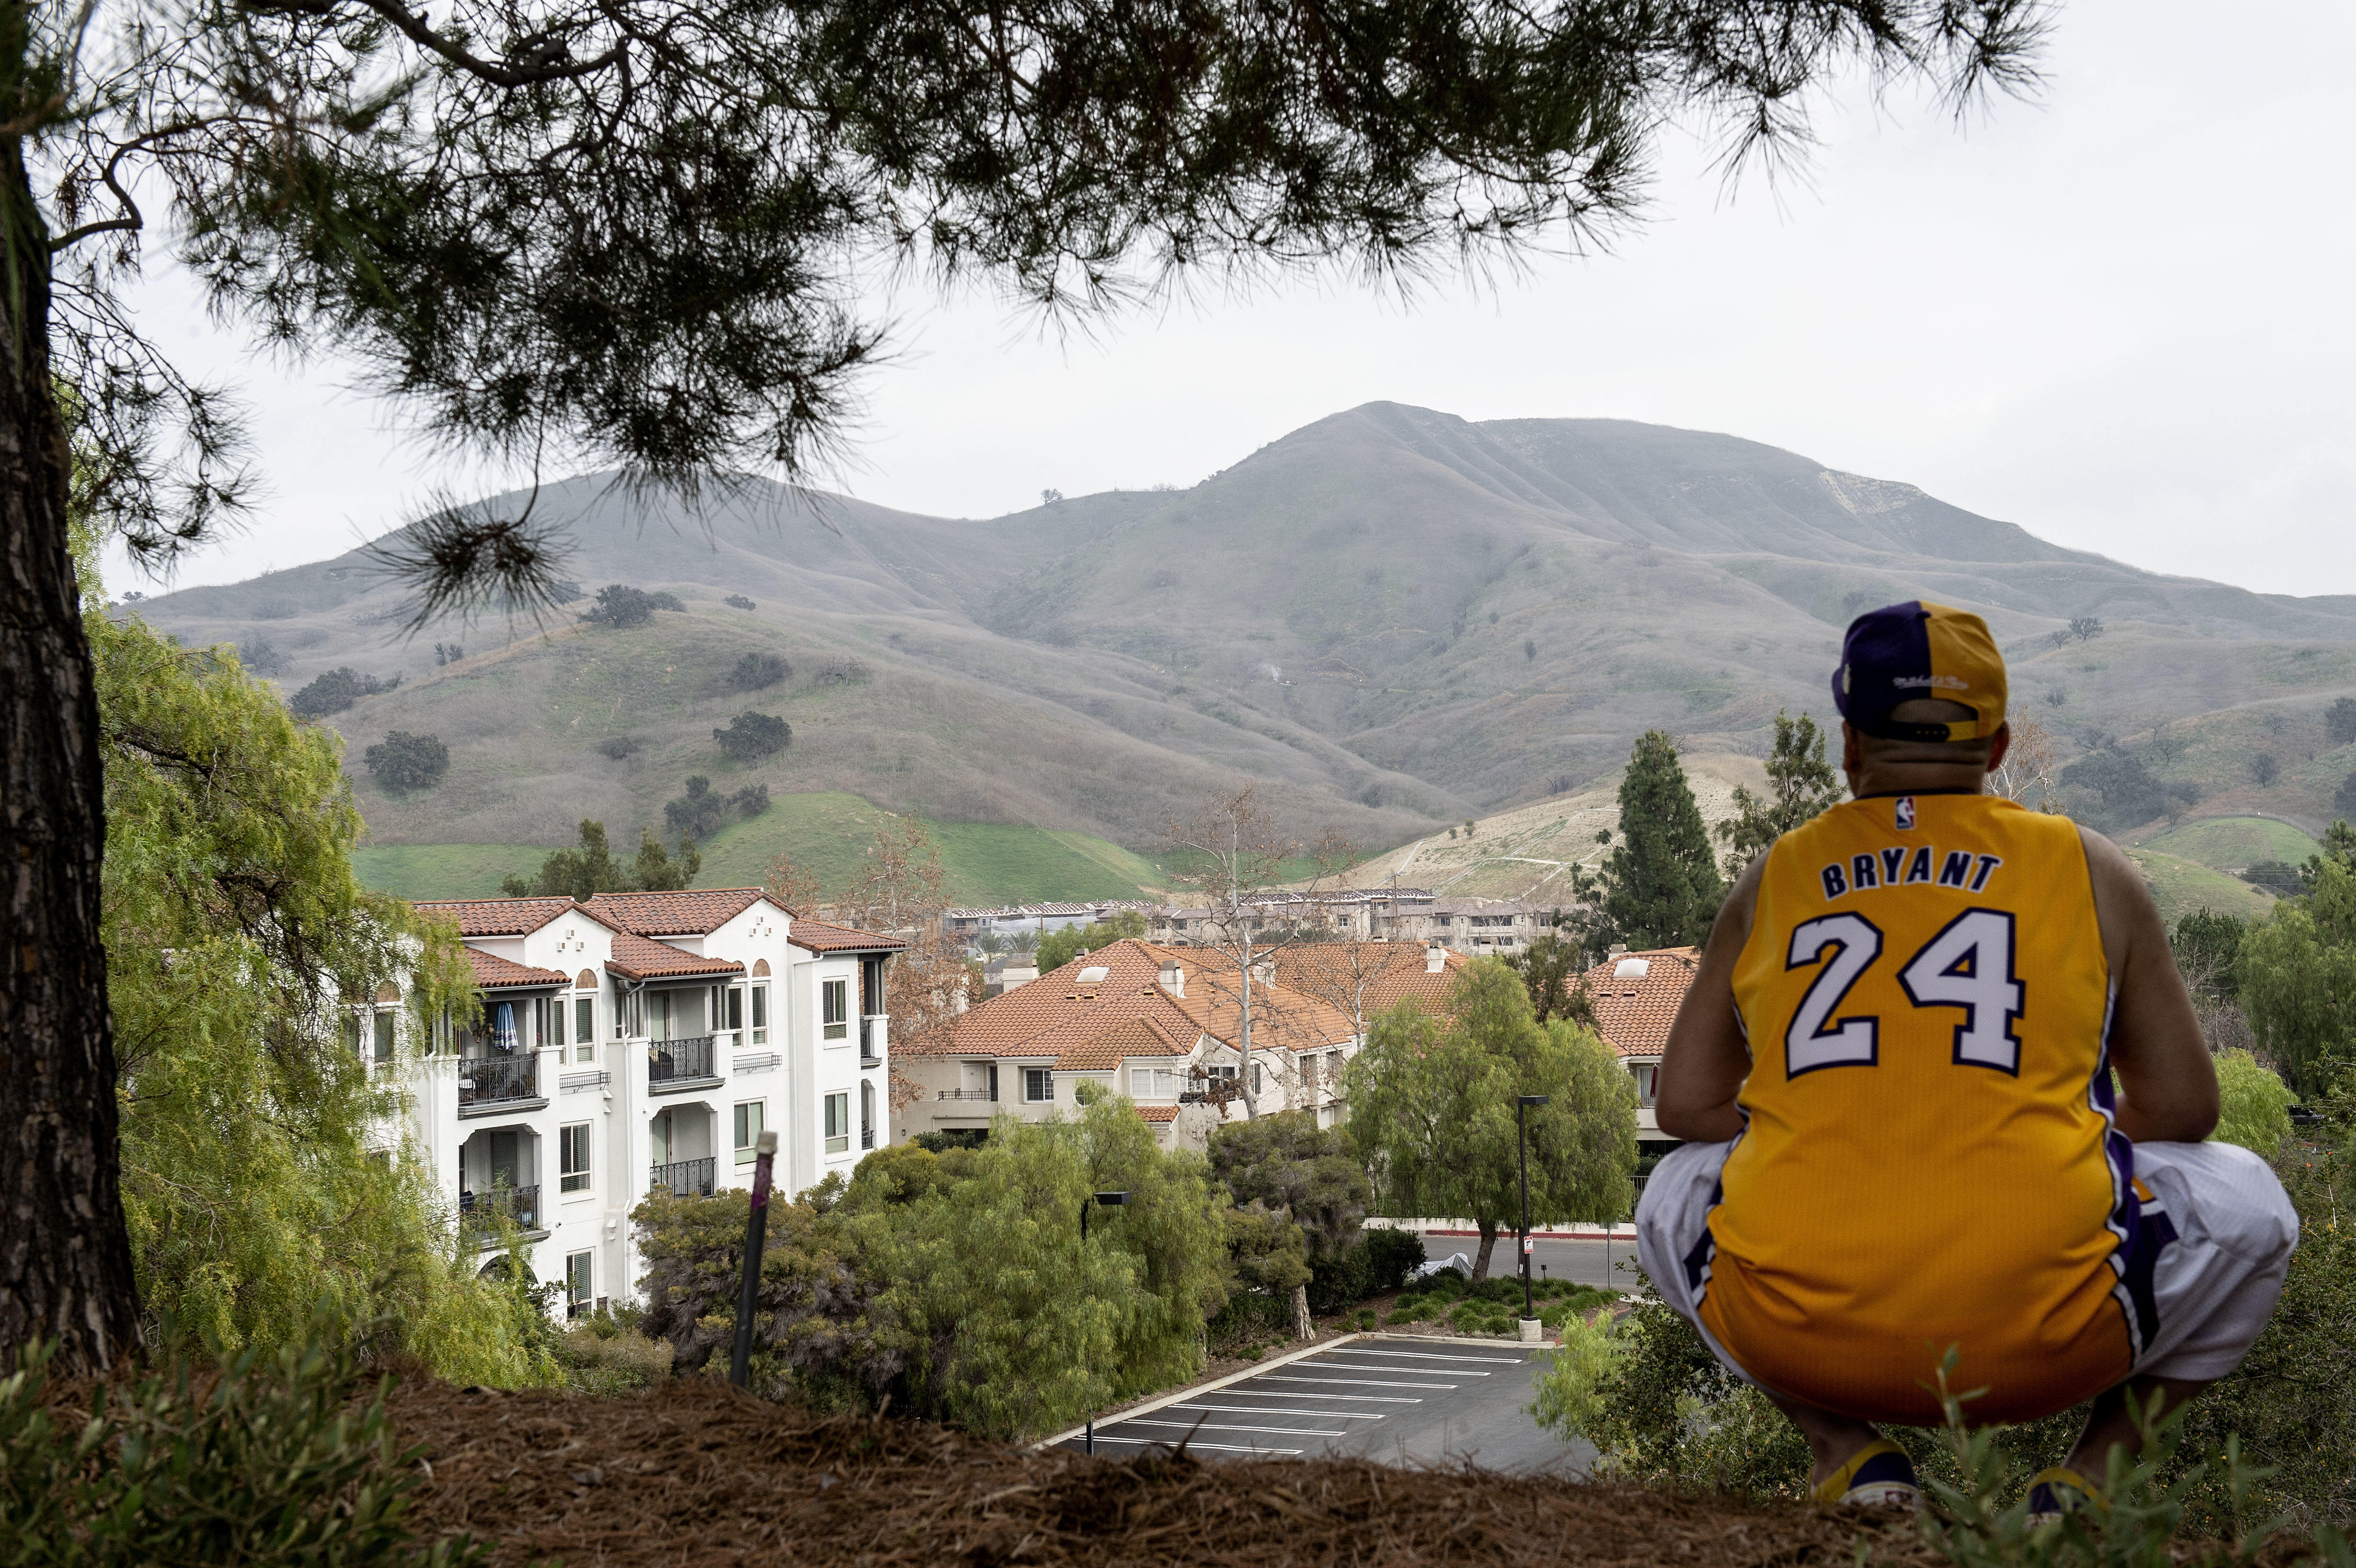 Former NBA Star Kobe Bryant Died On A Helicopter Crash